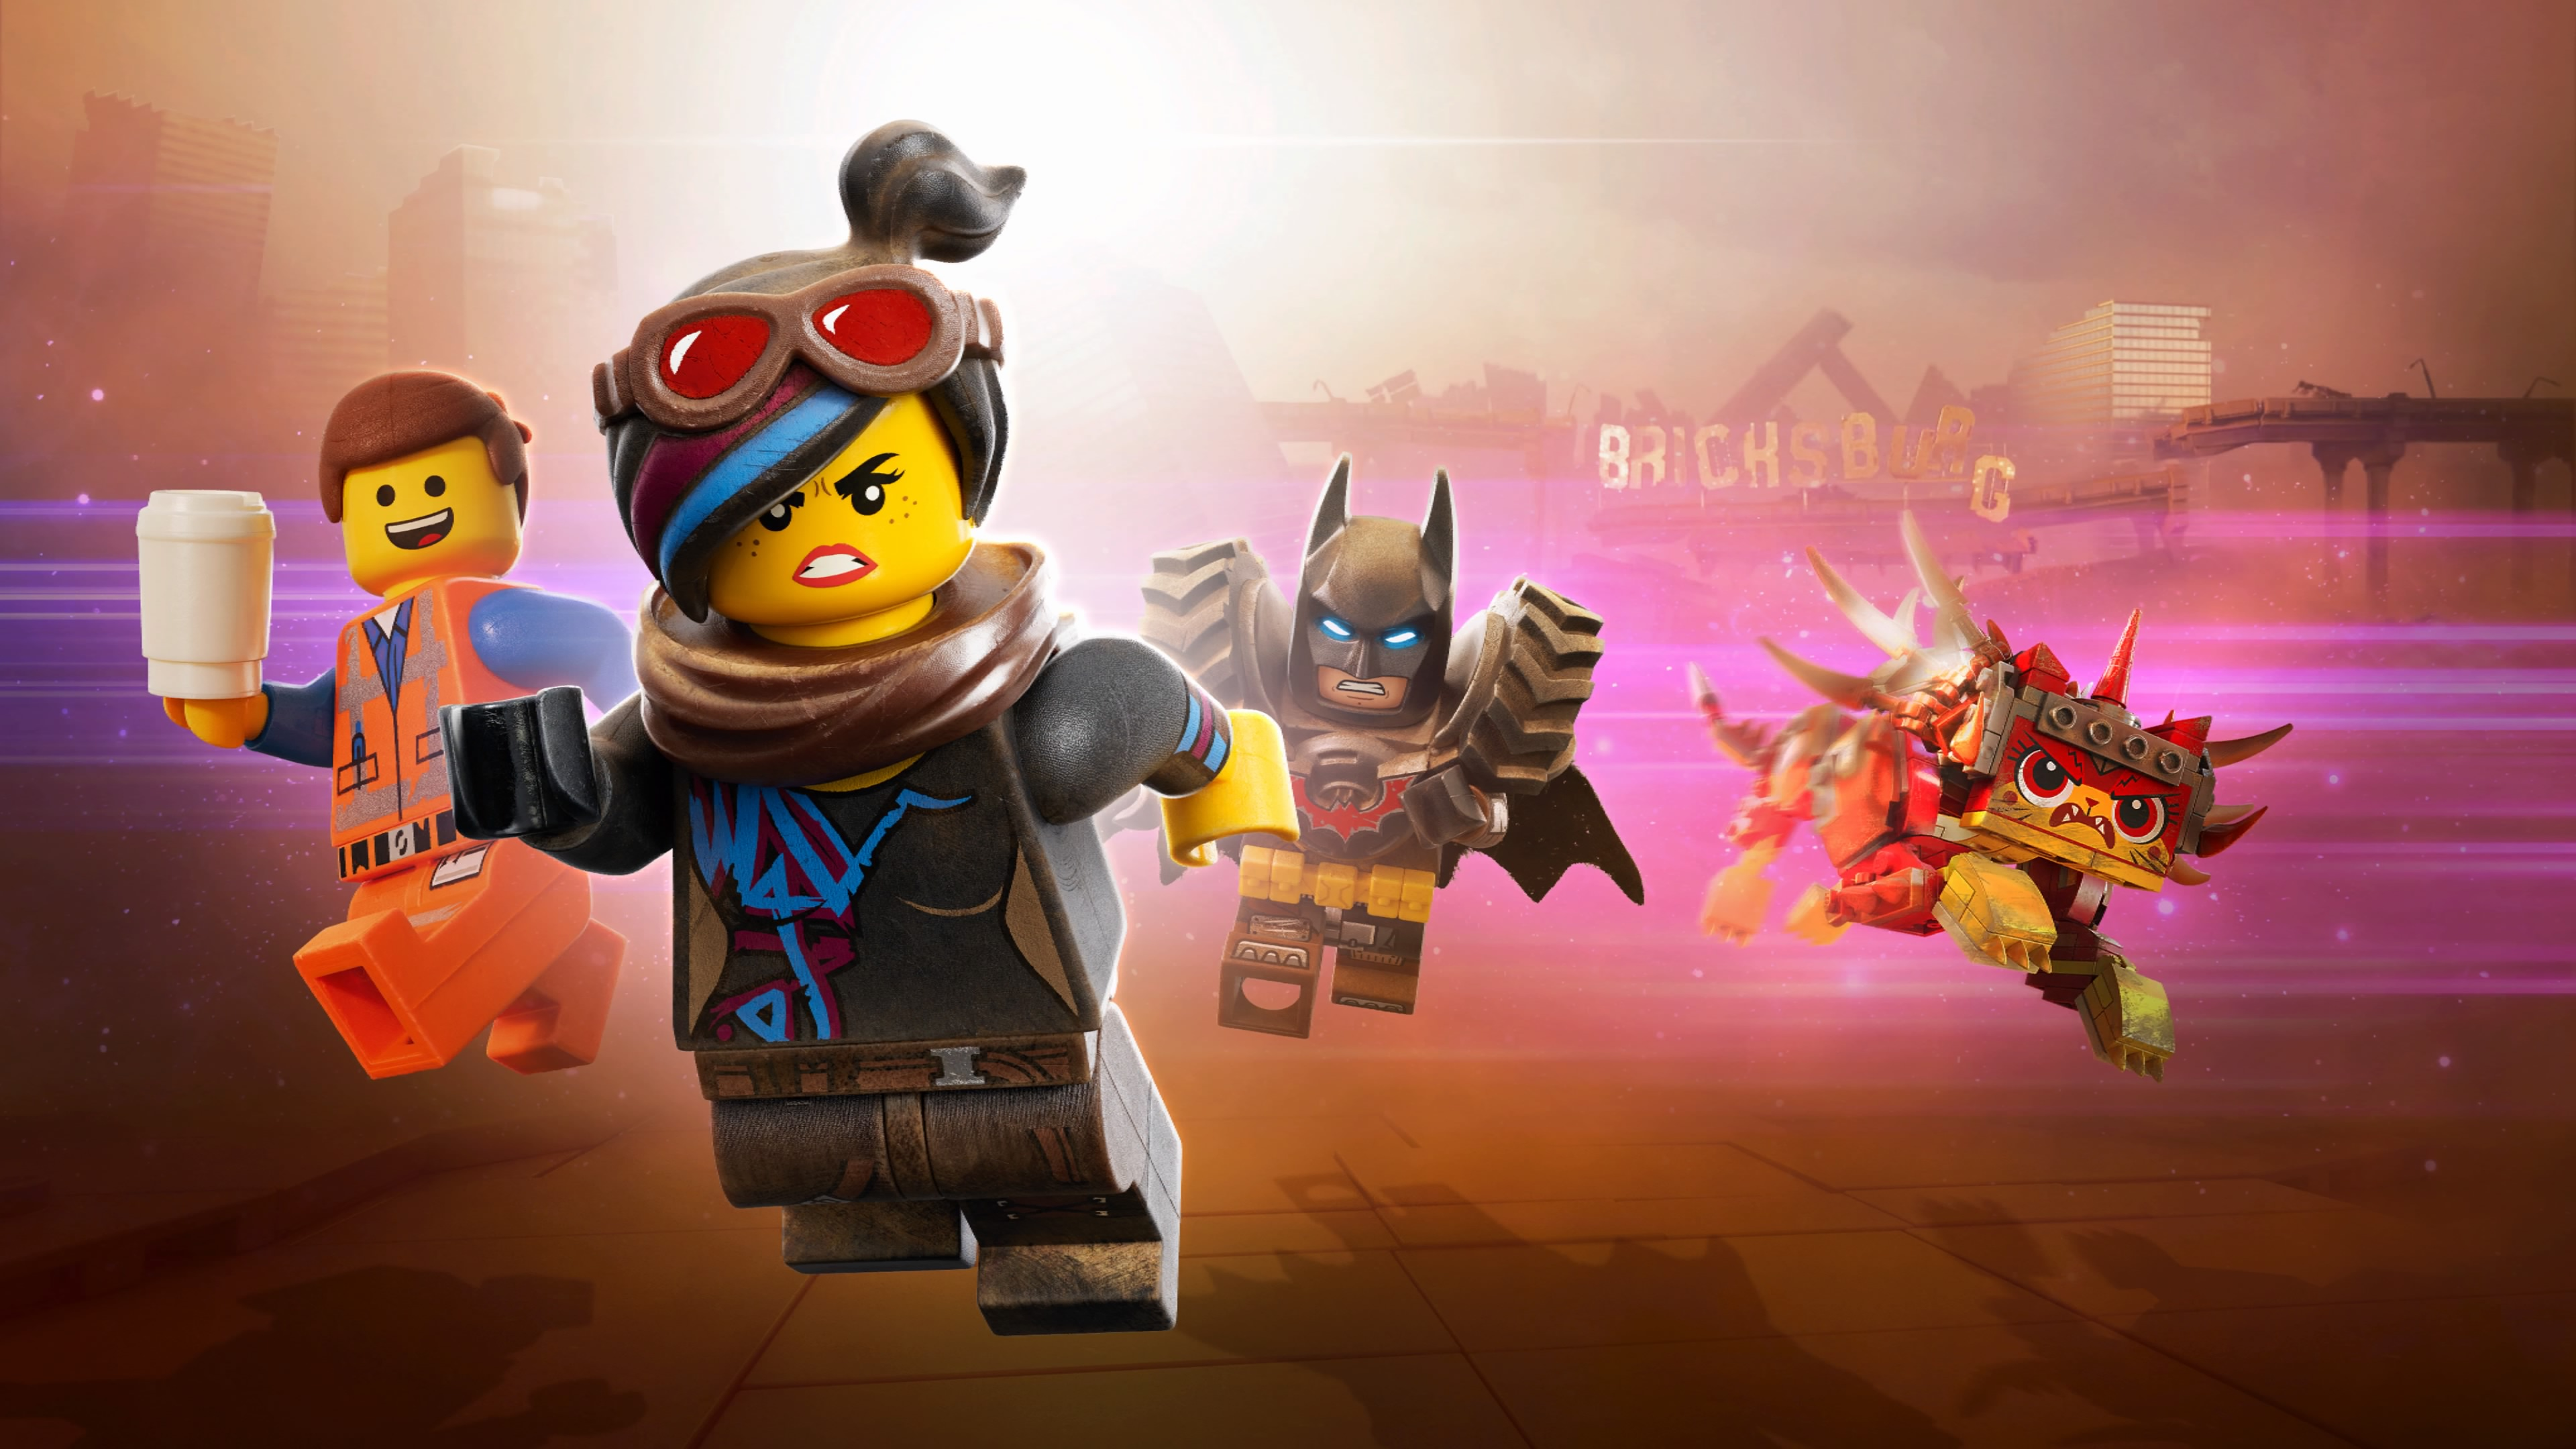 2019 the lego movie 2 the second part 4k 1555208723 - 2019 The Lego Movie 2 The Second Part 4k - the lego movie 2 wallpapers, the lego movie 2 the second part wallpapers, movies wallpapers, hd-wallpapers, 4k-wallpapers, 2019 movies wallpapers